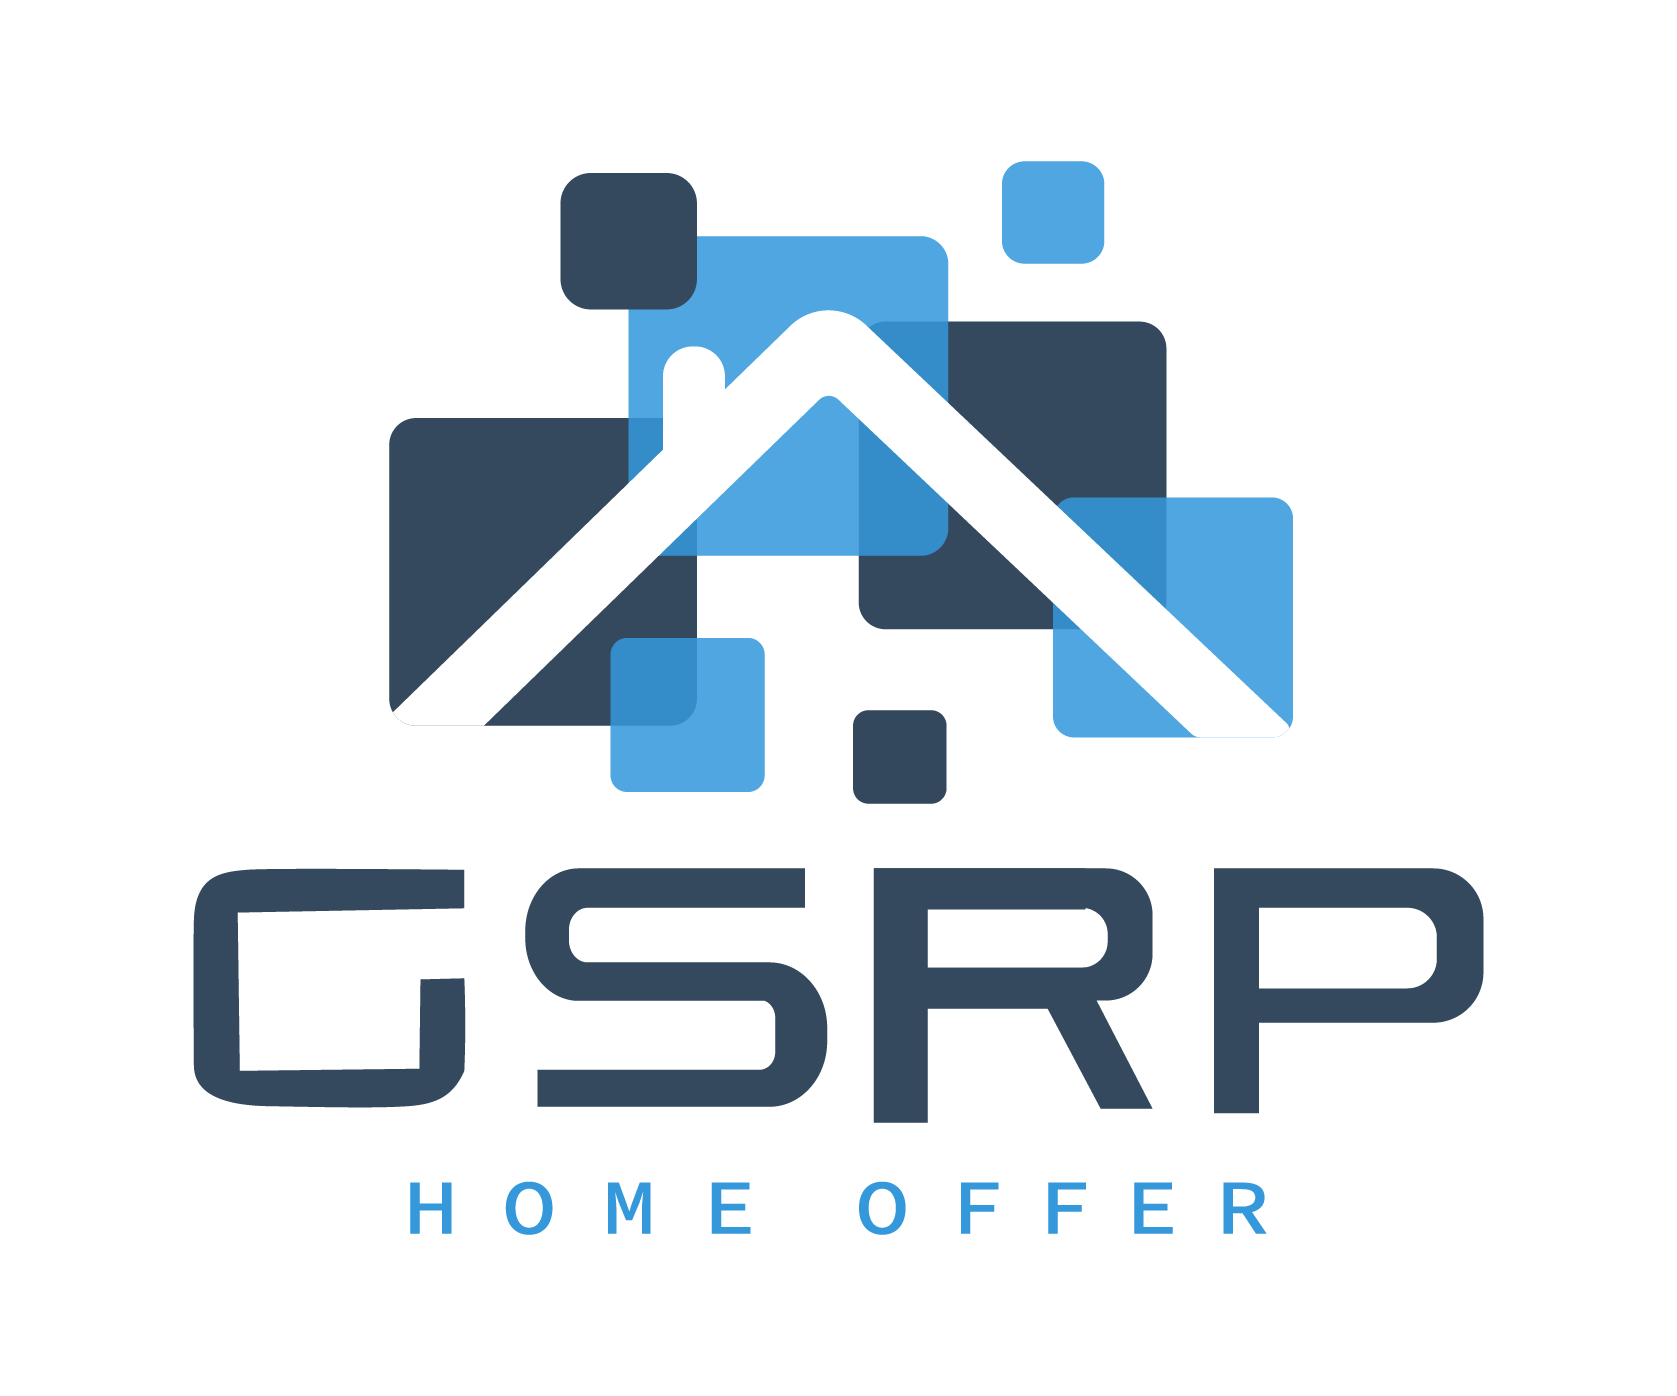 GSRP Home Offer logo